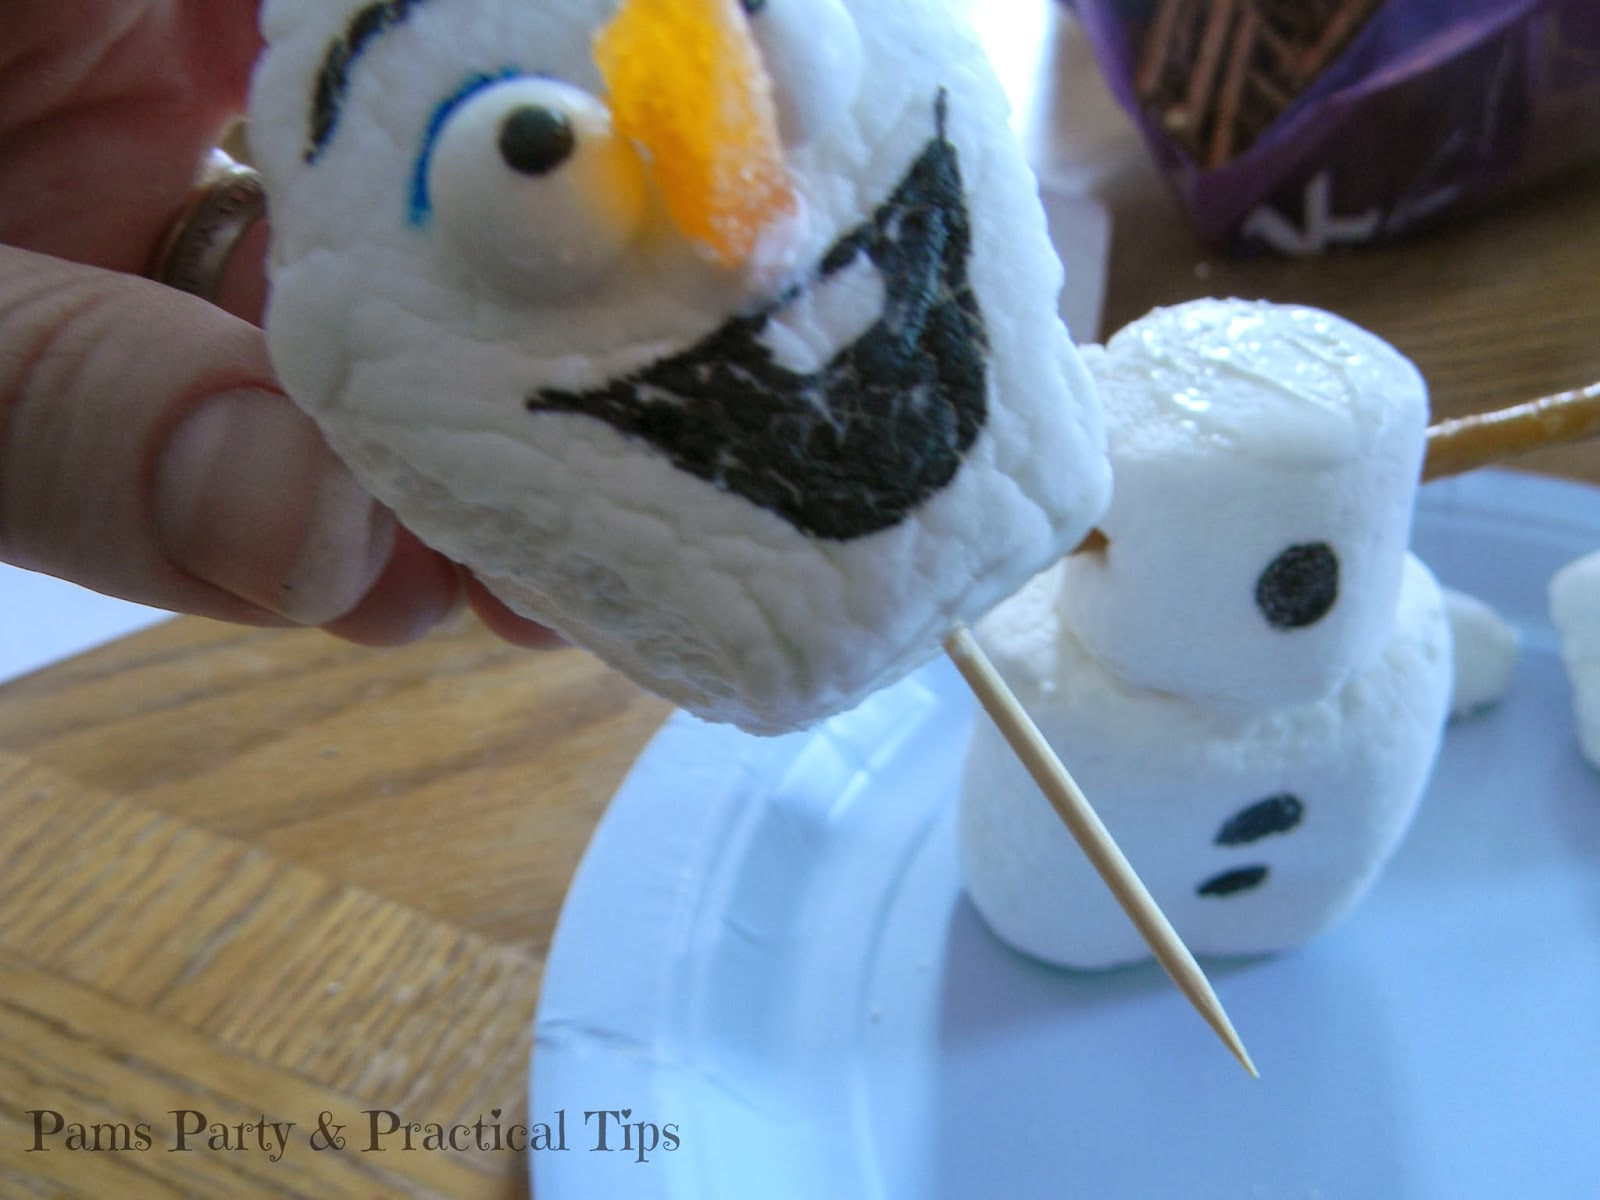 How to make Olaf the Snowman with marshmallows